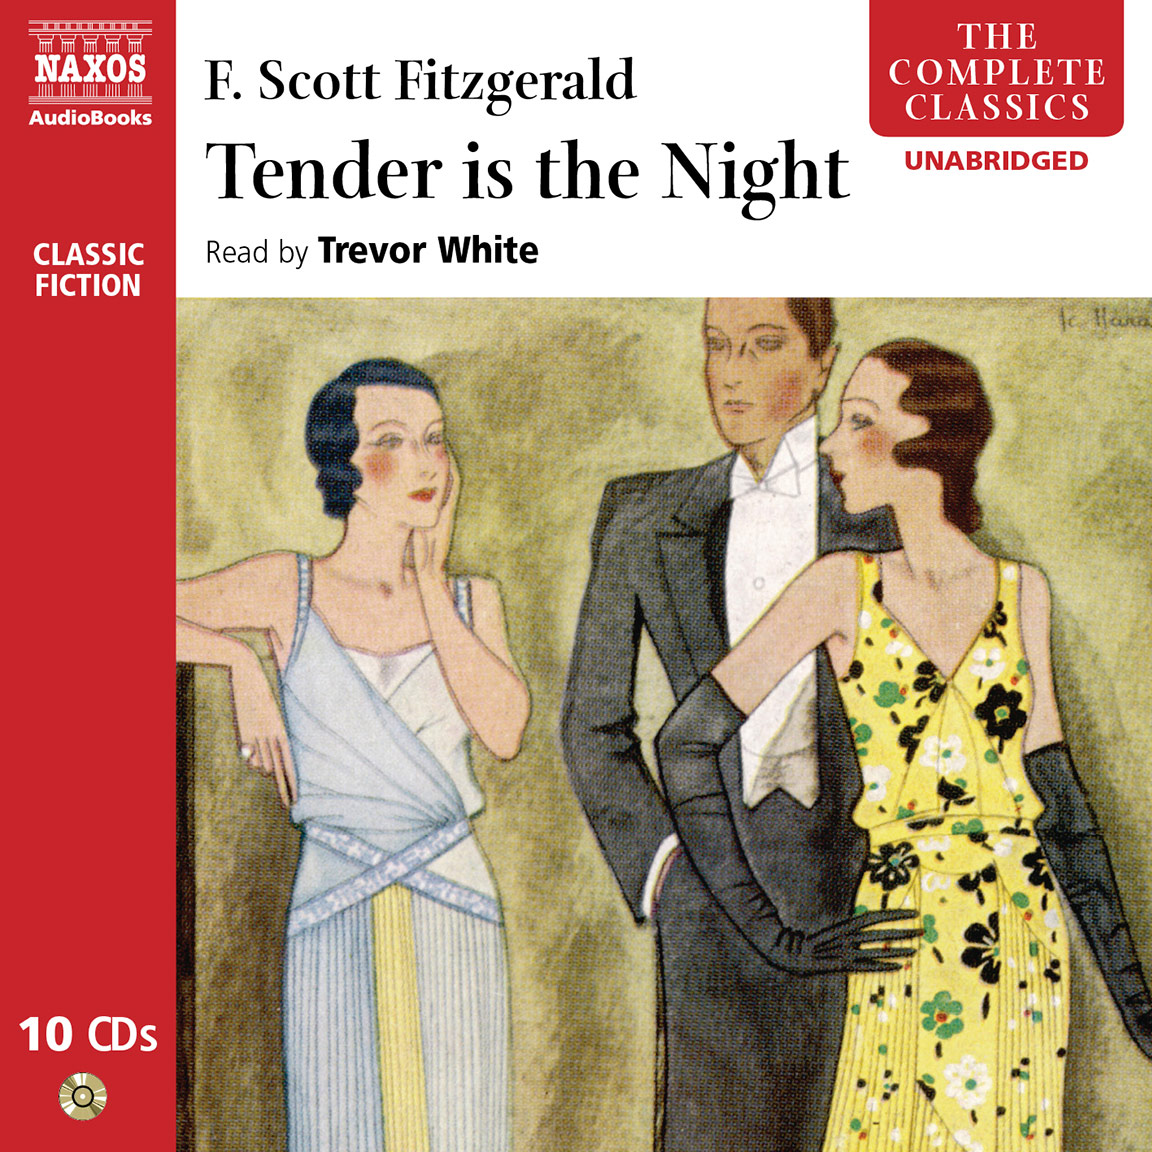 Tender is the Night (unabridged)